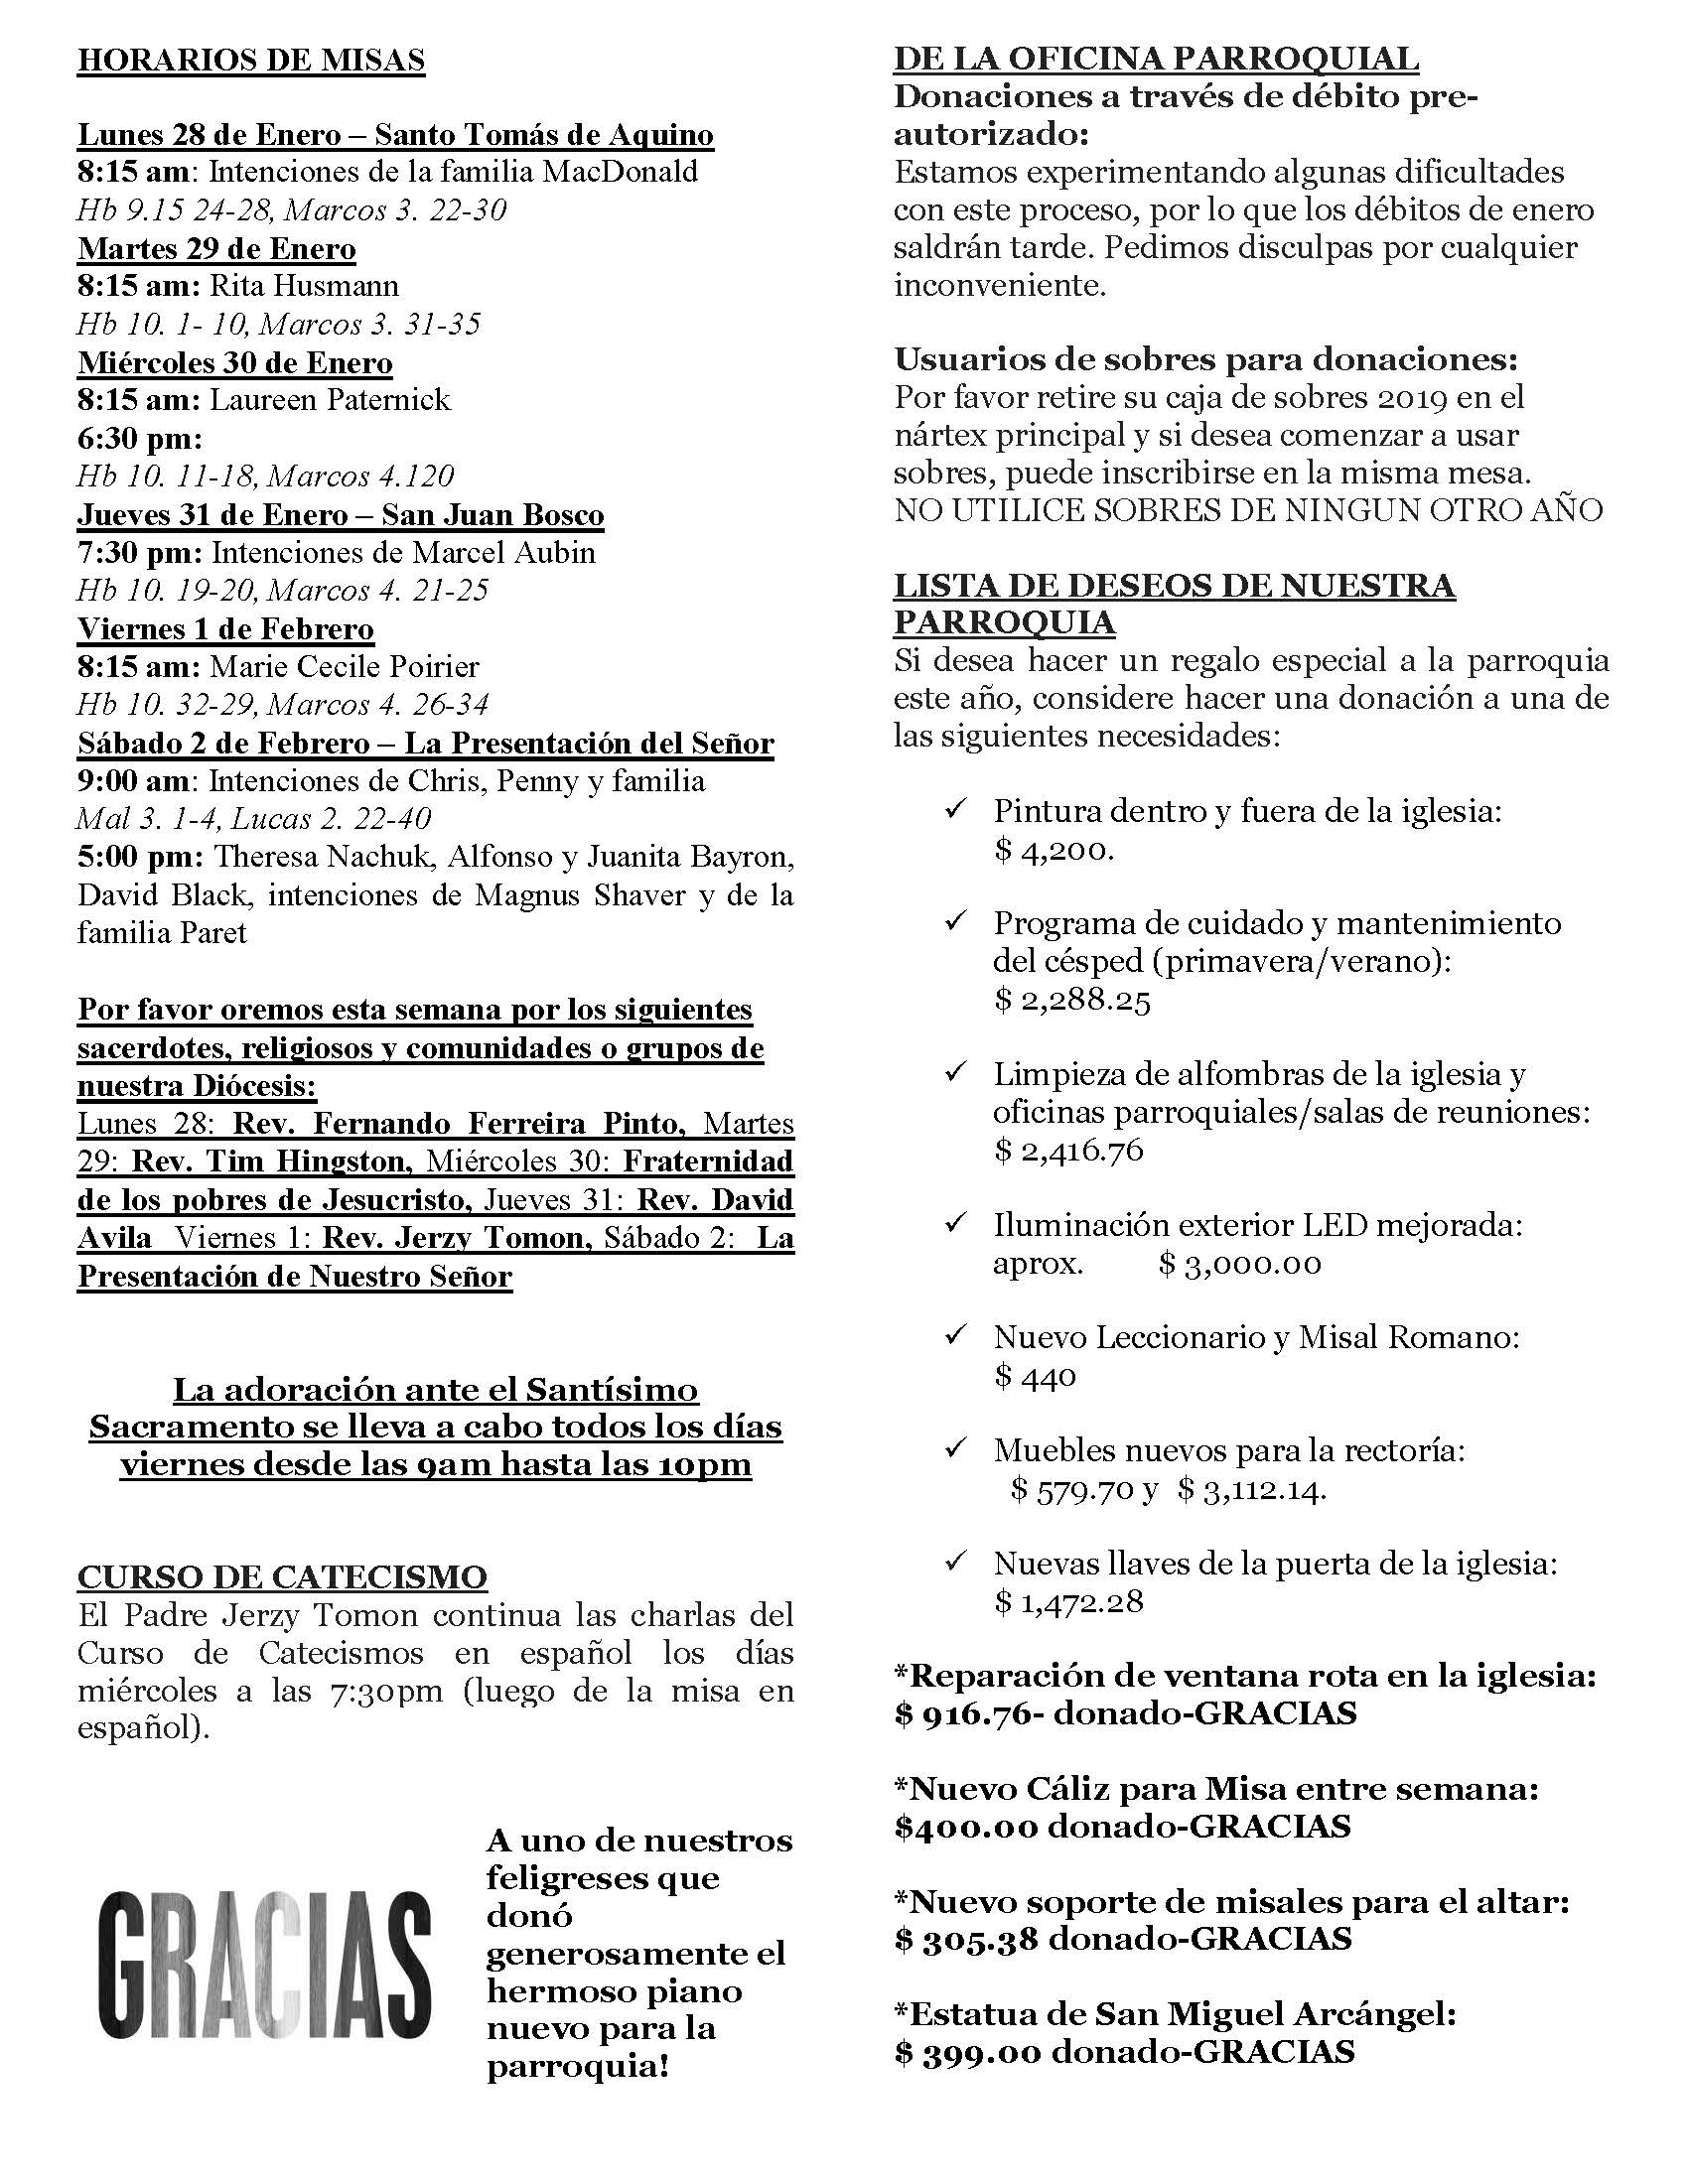 Spanish Bulletin - 3rd Sunday in Ordinary Time, January 27, 2019_Page_2.jpg